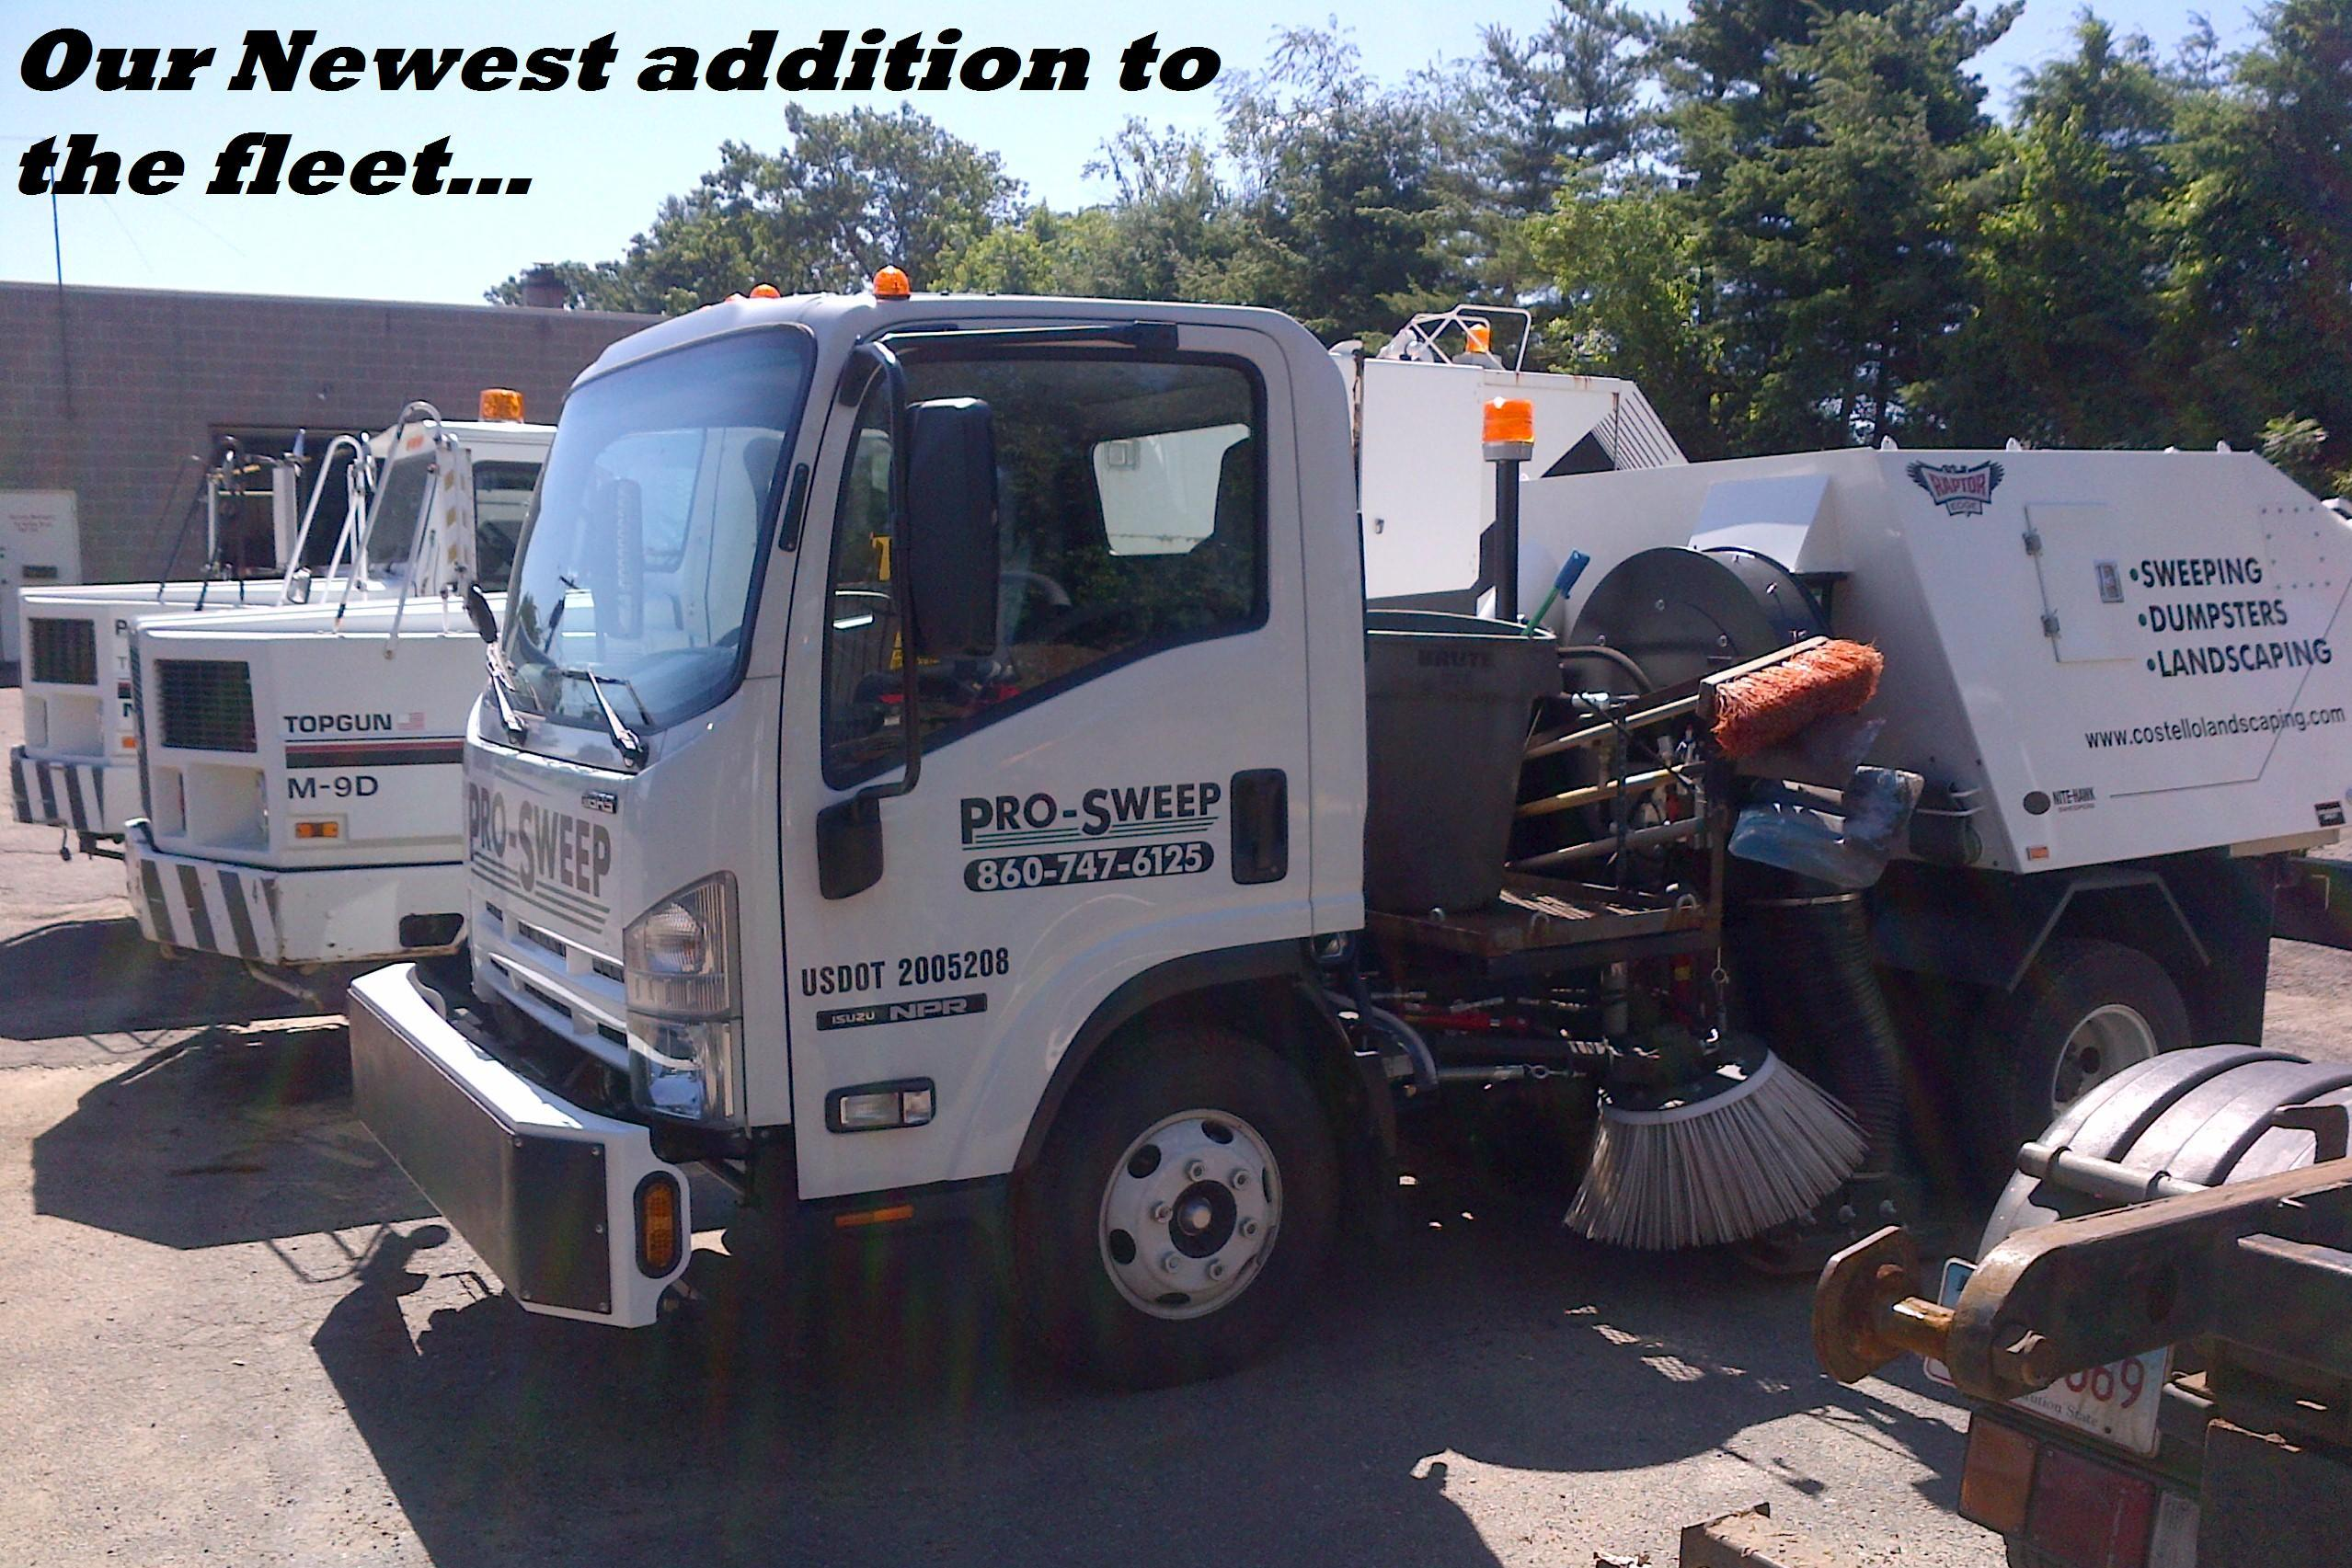 Sand Sweeping, Parking Lot Sweeping, Parking Lot Maintenance, Maintenance Parking Lot, Salt and Sand Sweeping, Sweeping Service